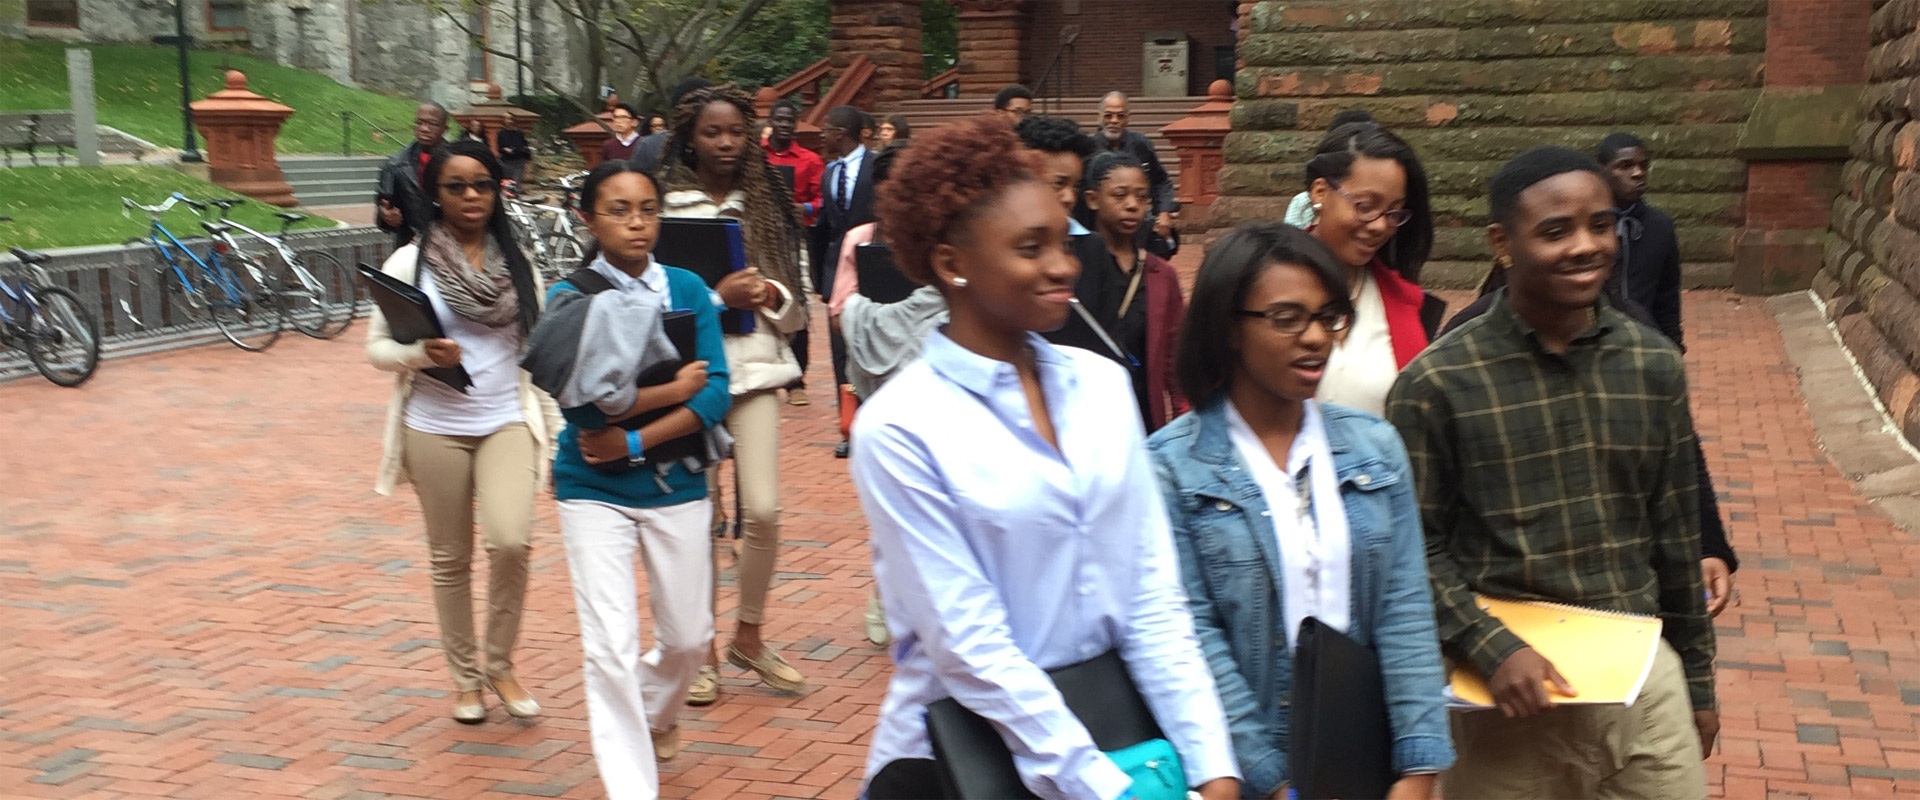 We help underrepresented students see top colleges as real options